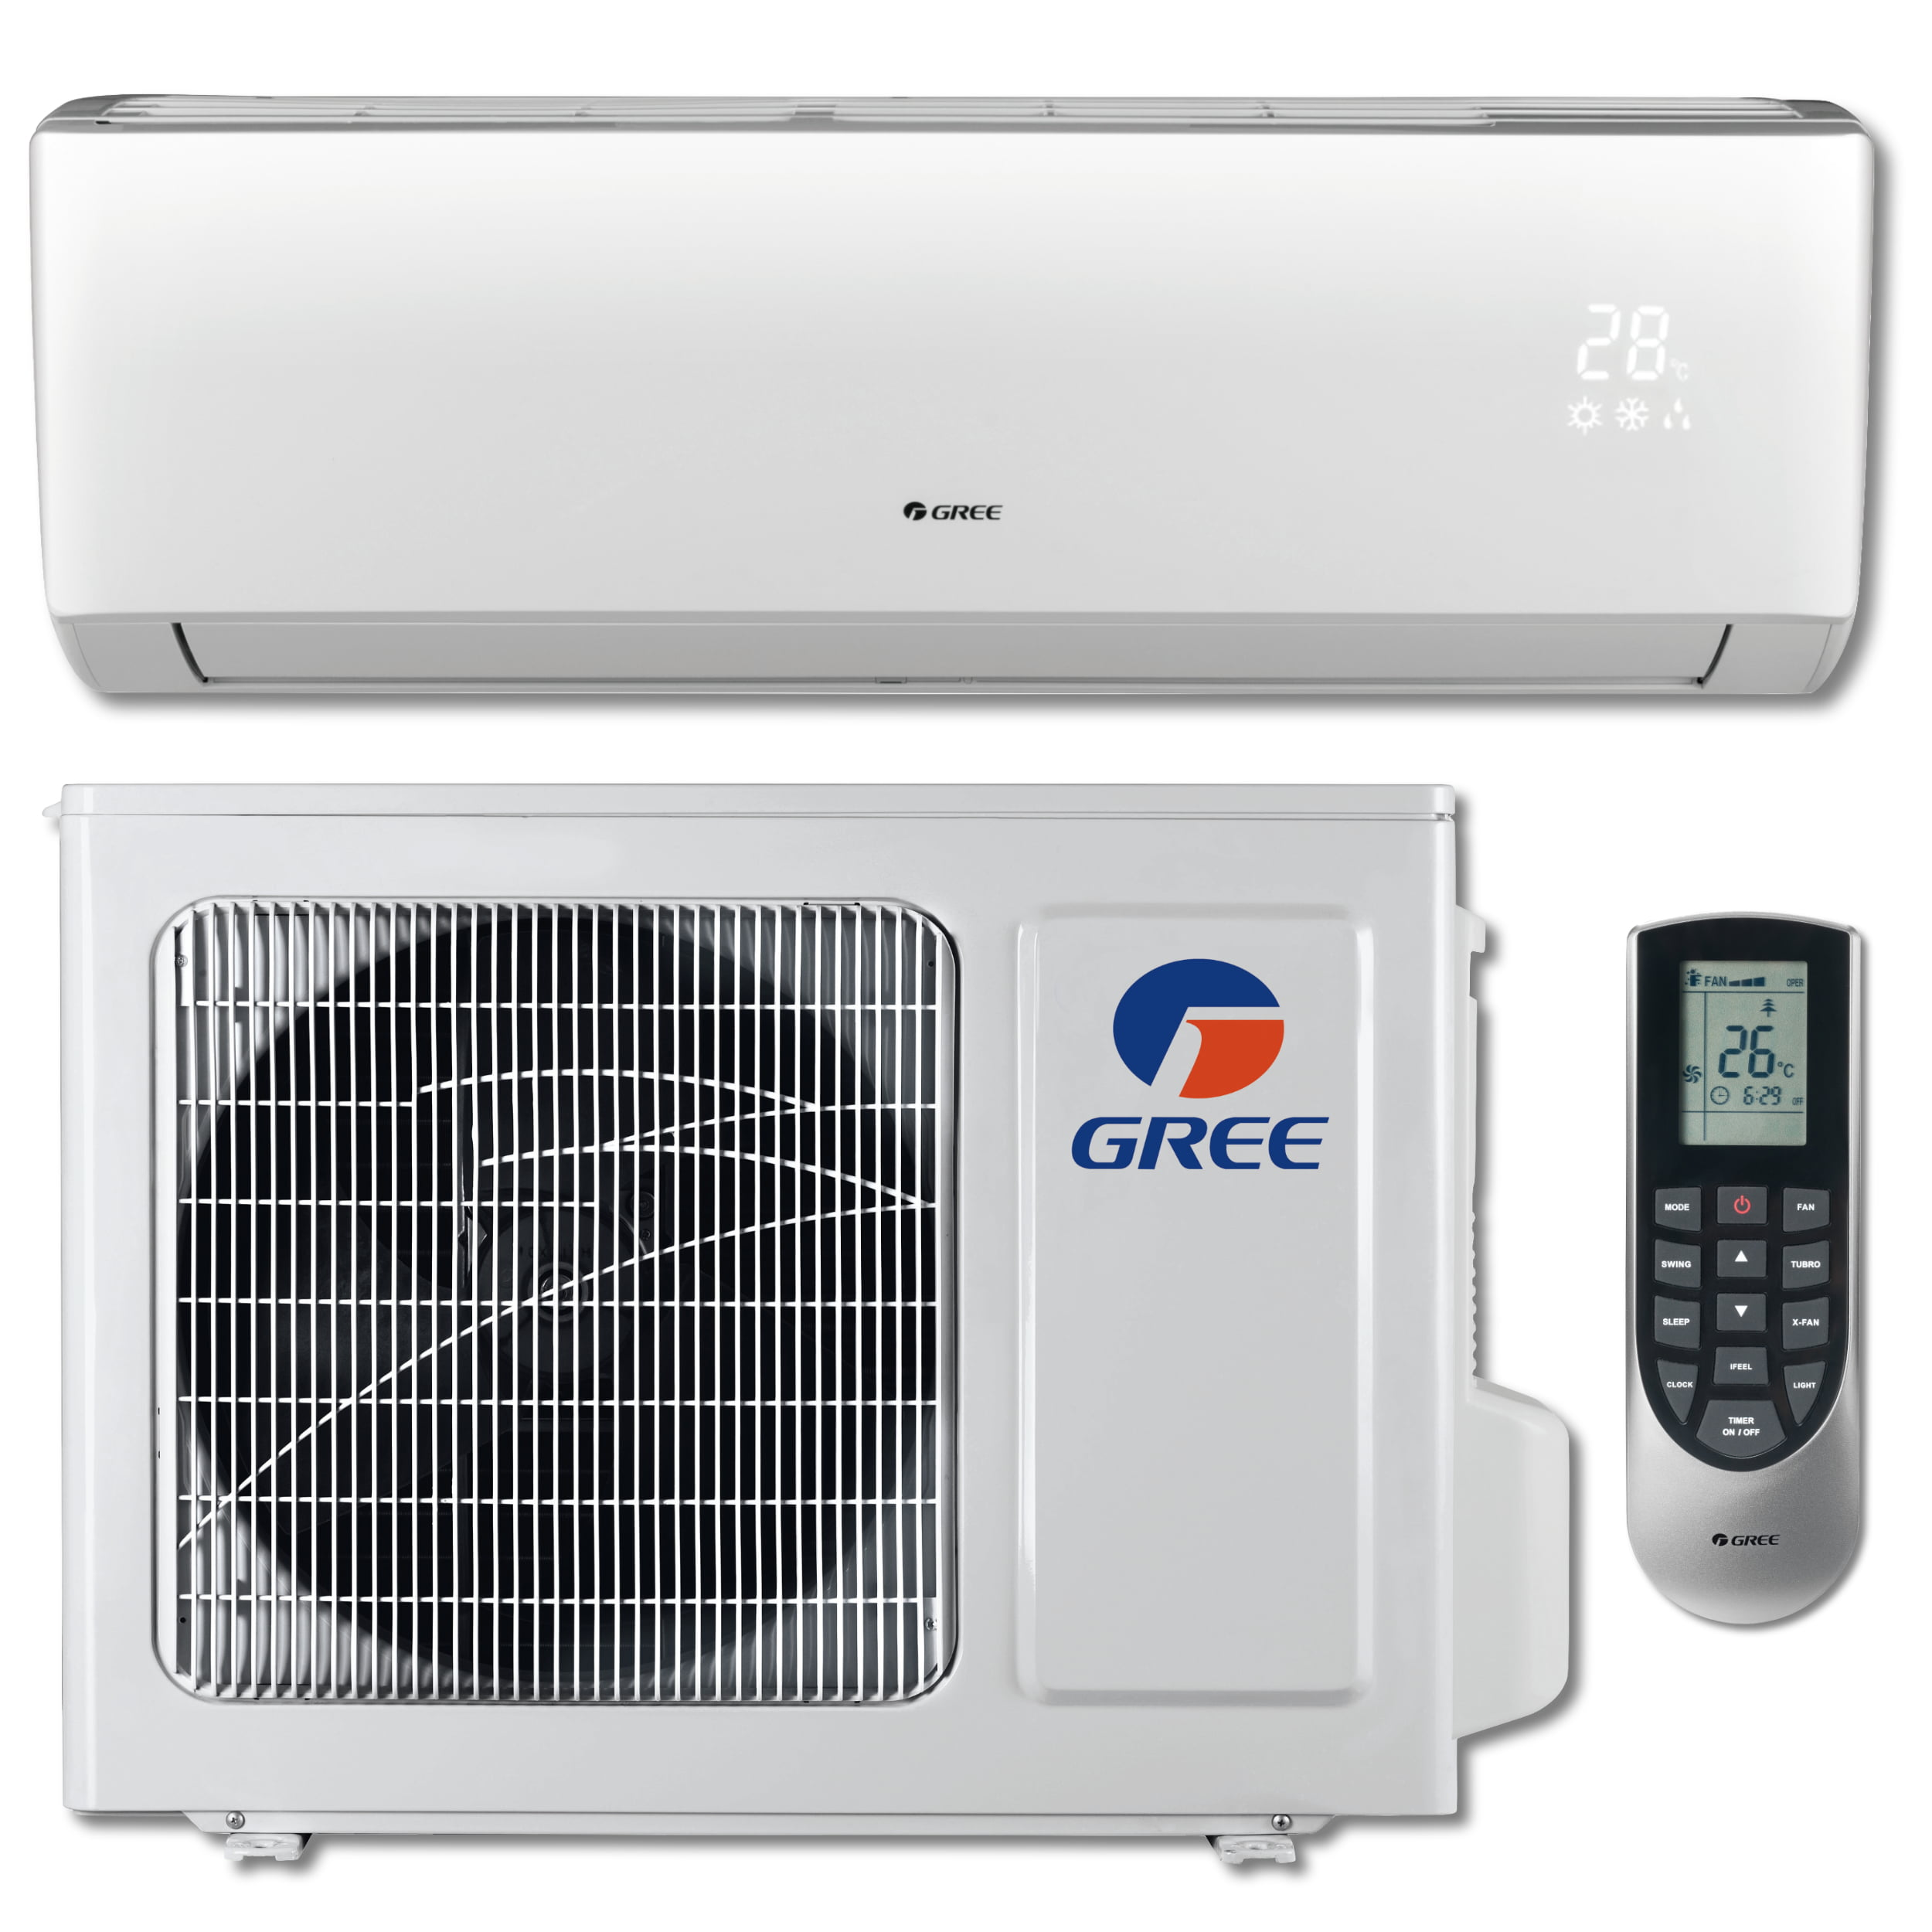 GREE VIREO+ 12,000 BTU Cool   12,200 BTU Heat Ductless Mini Split Air Conditioning and Heating... by Gree